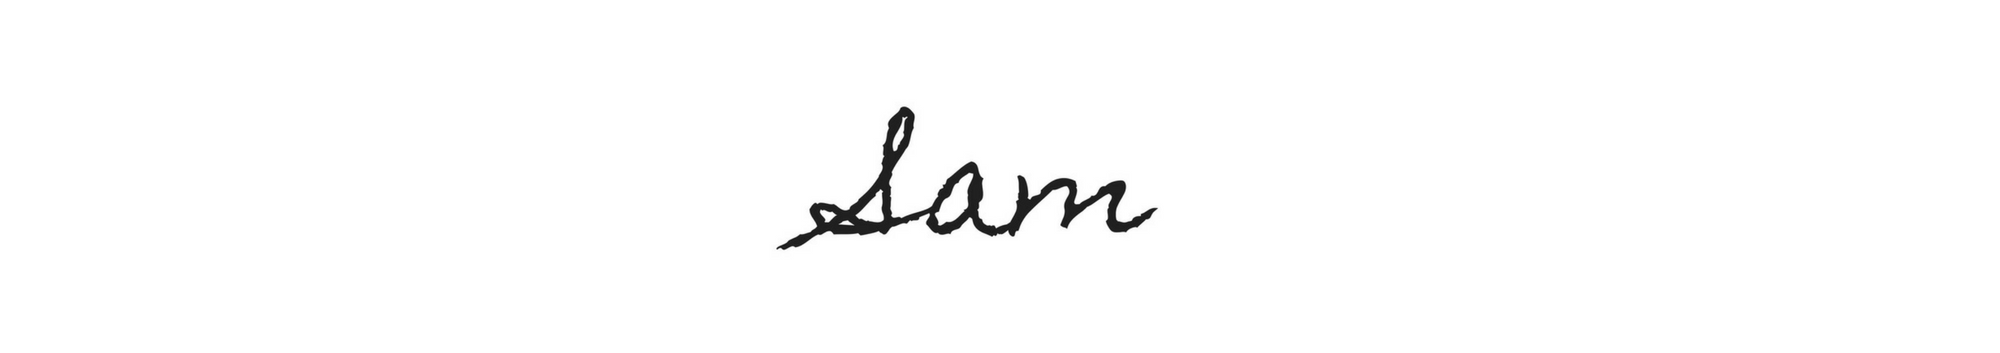 WEH-signature.png